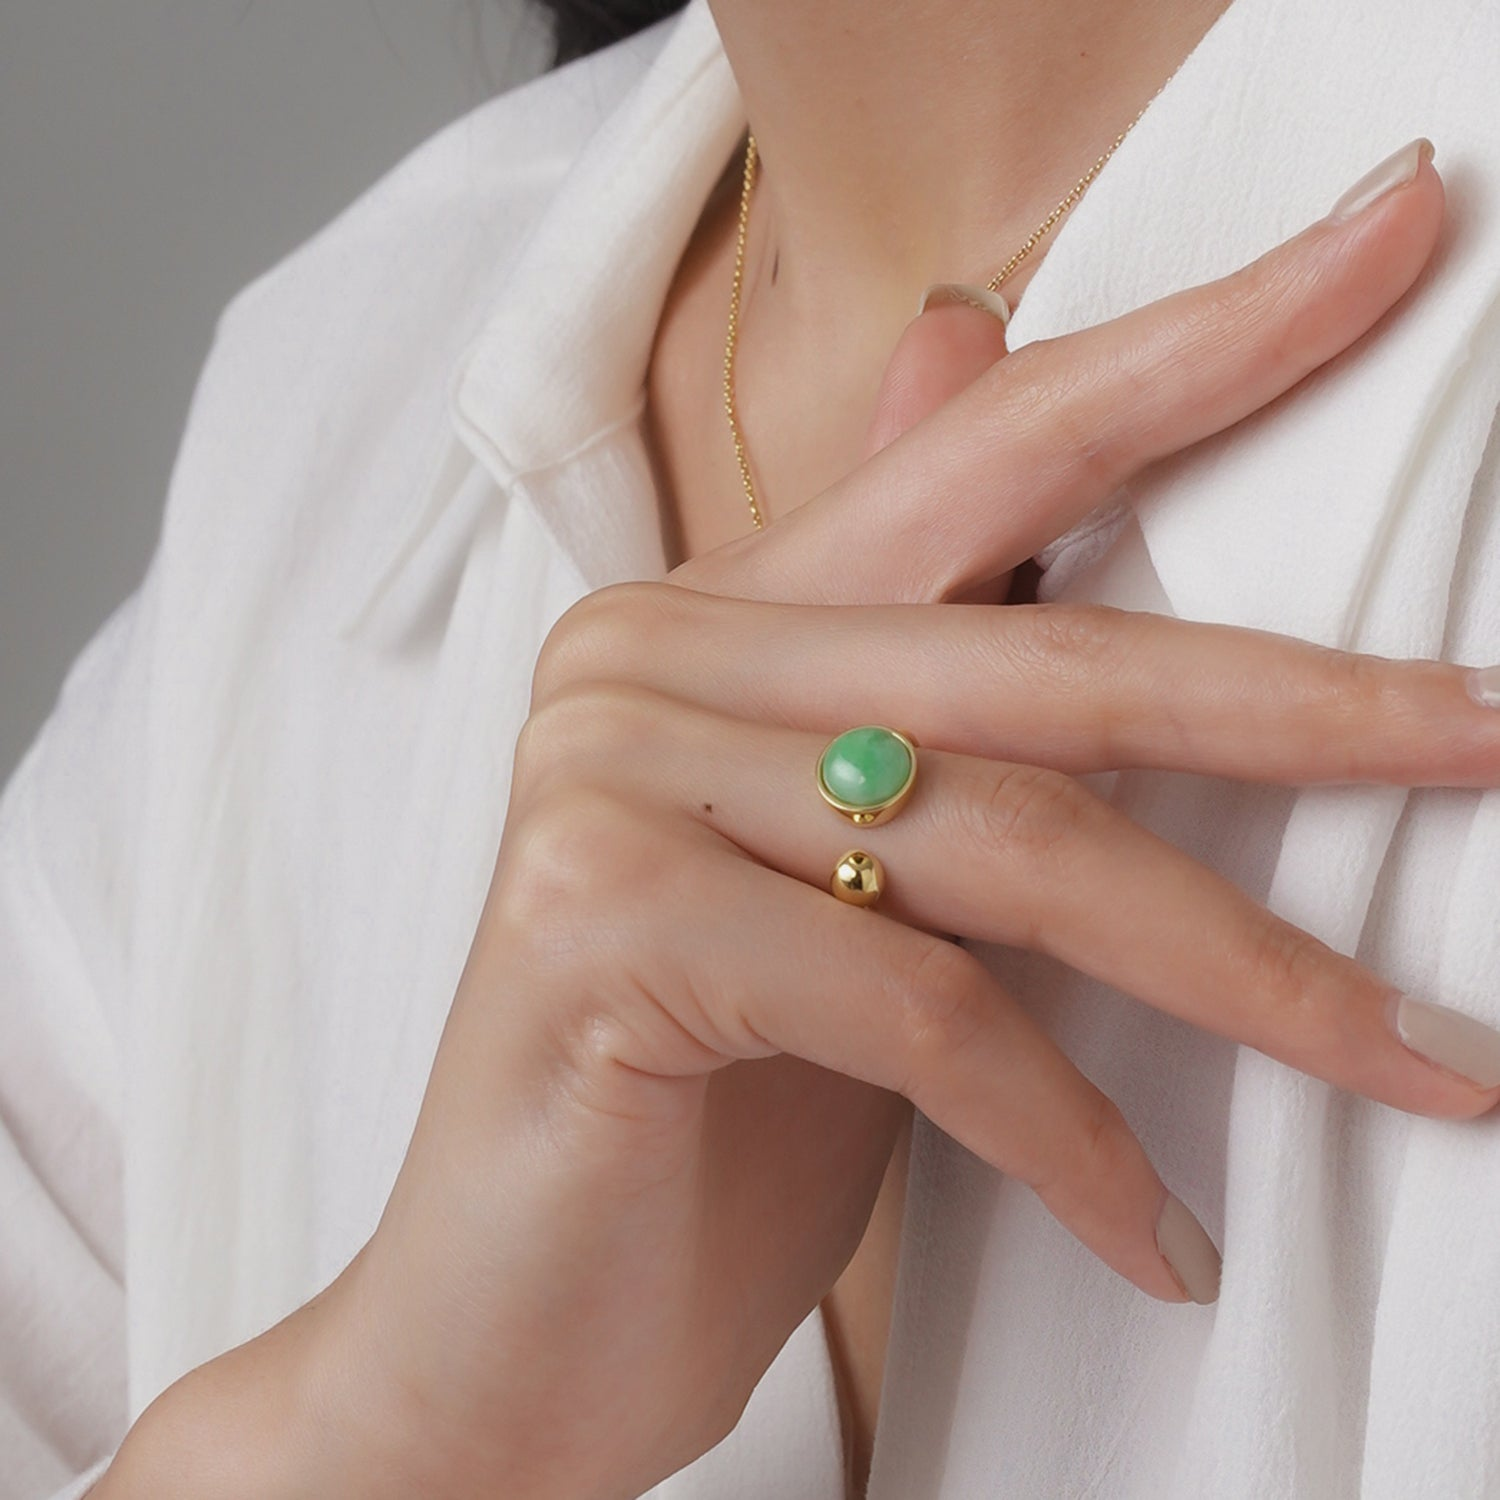 EDEN 悅 Open Ring in Apple Green Jade